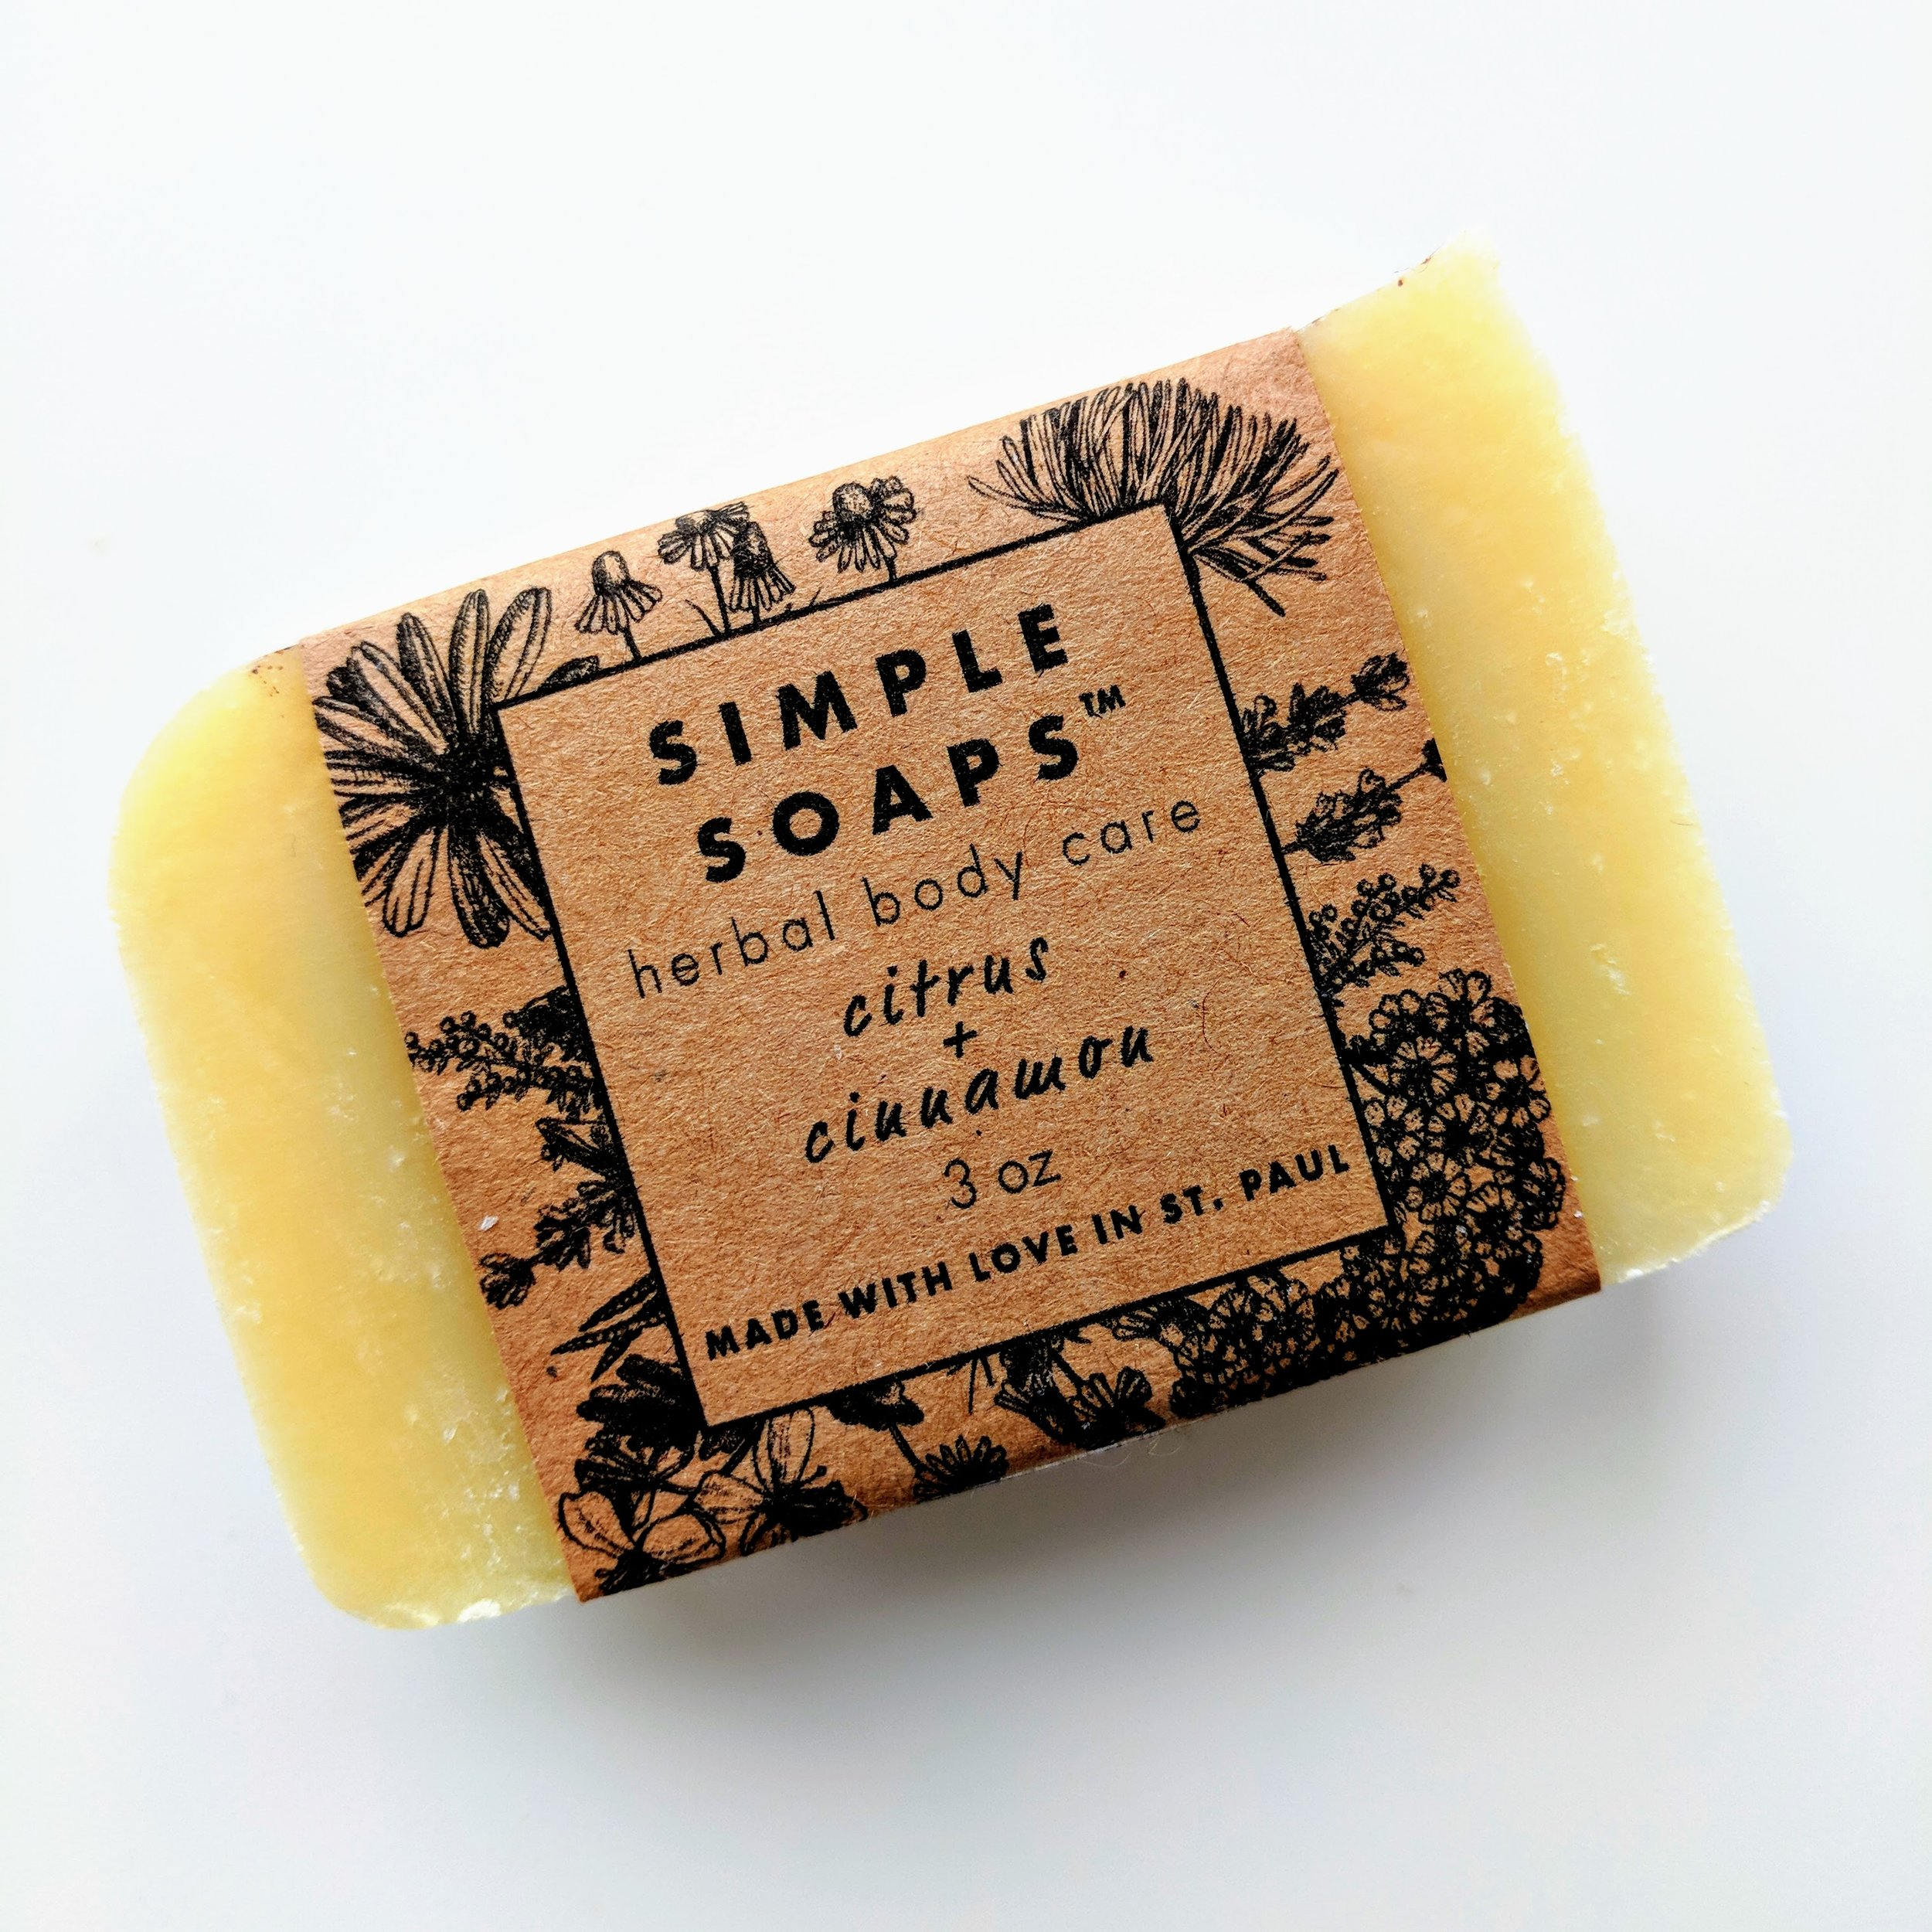 LindsaySchraw_SimpleSoaps_CitrusCinnamon.jpg